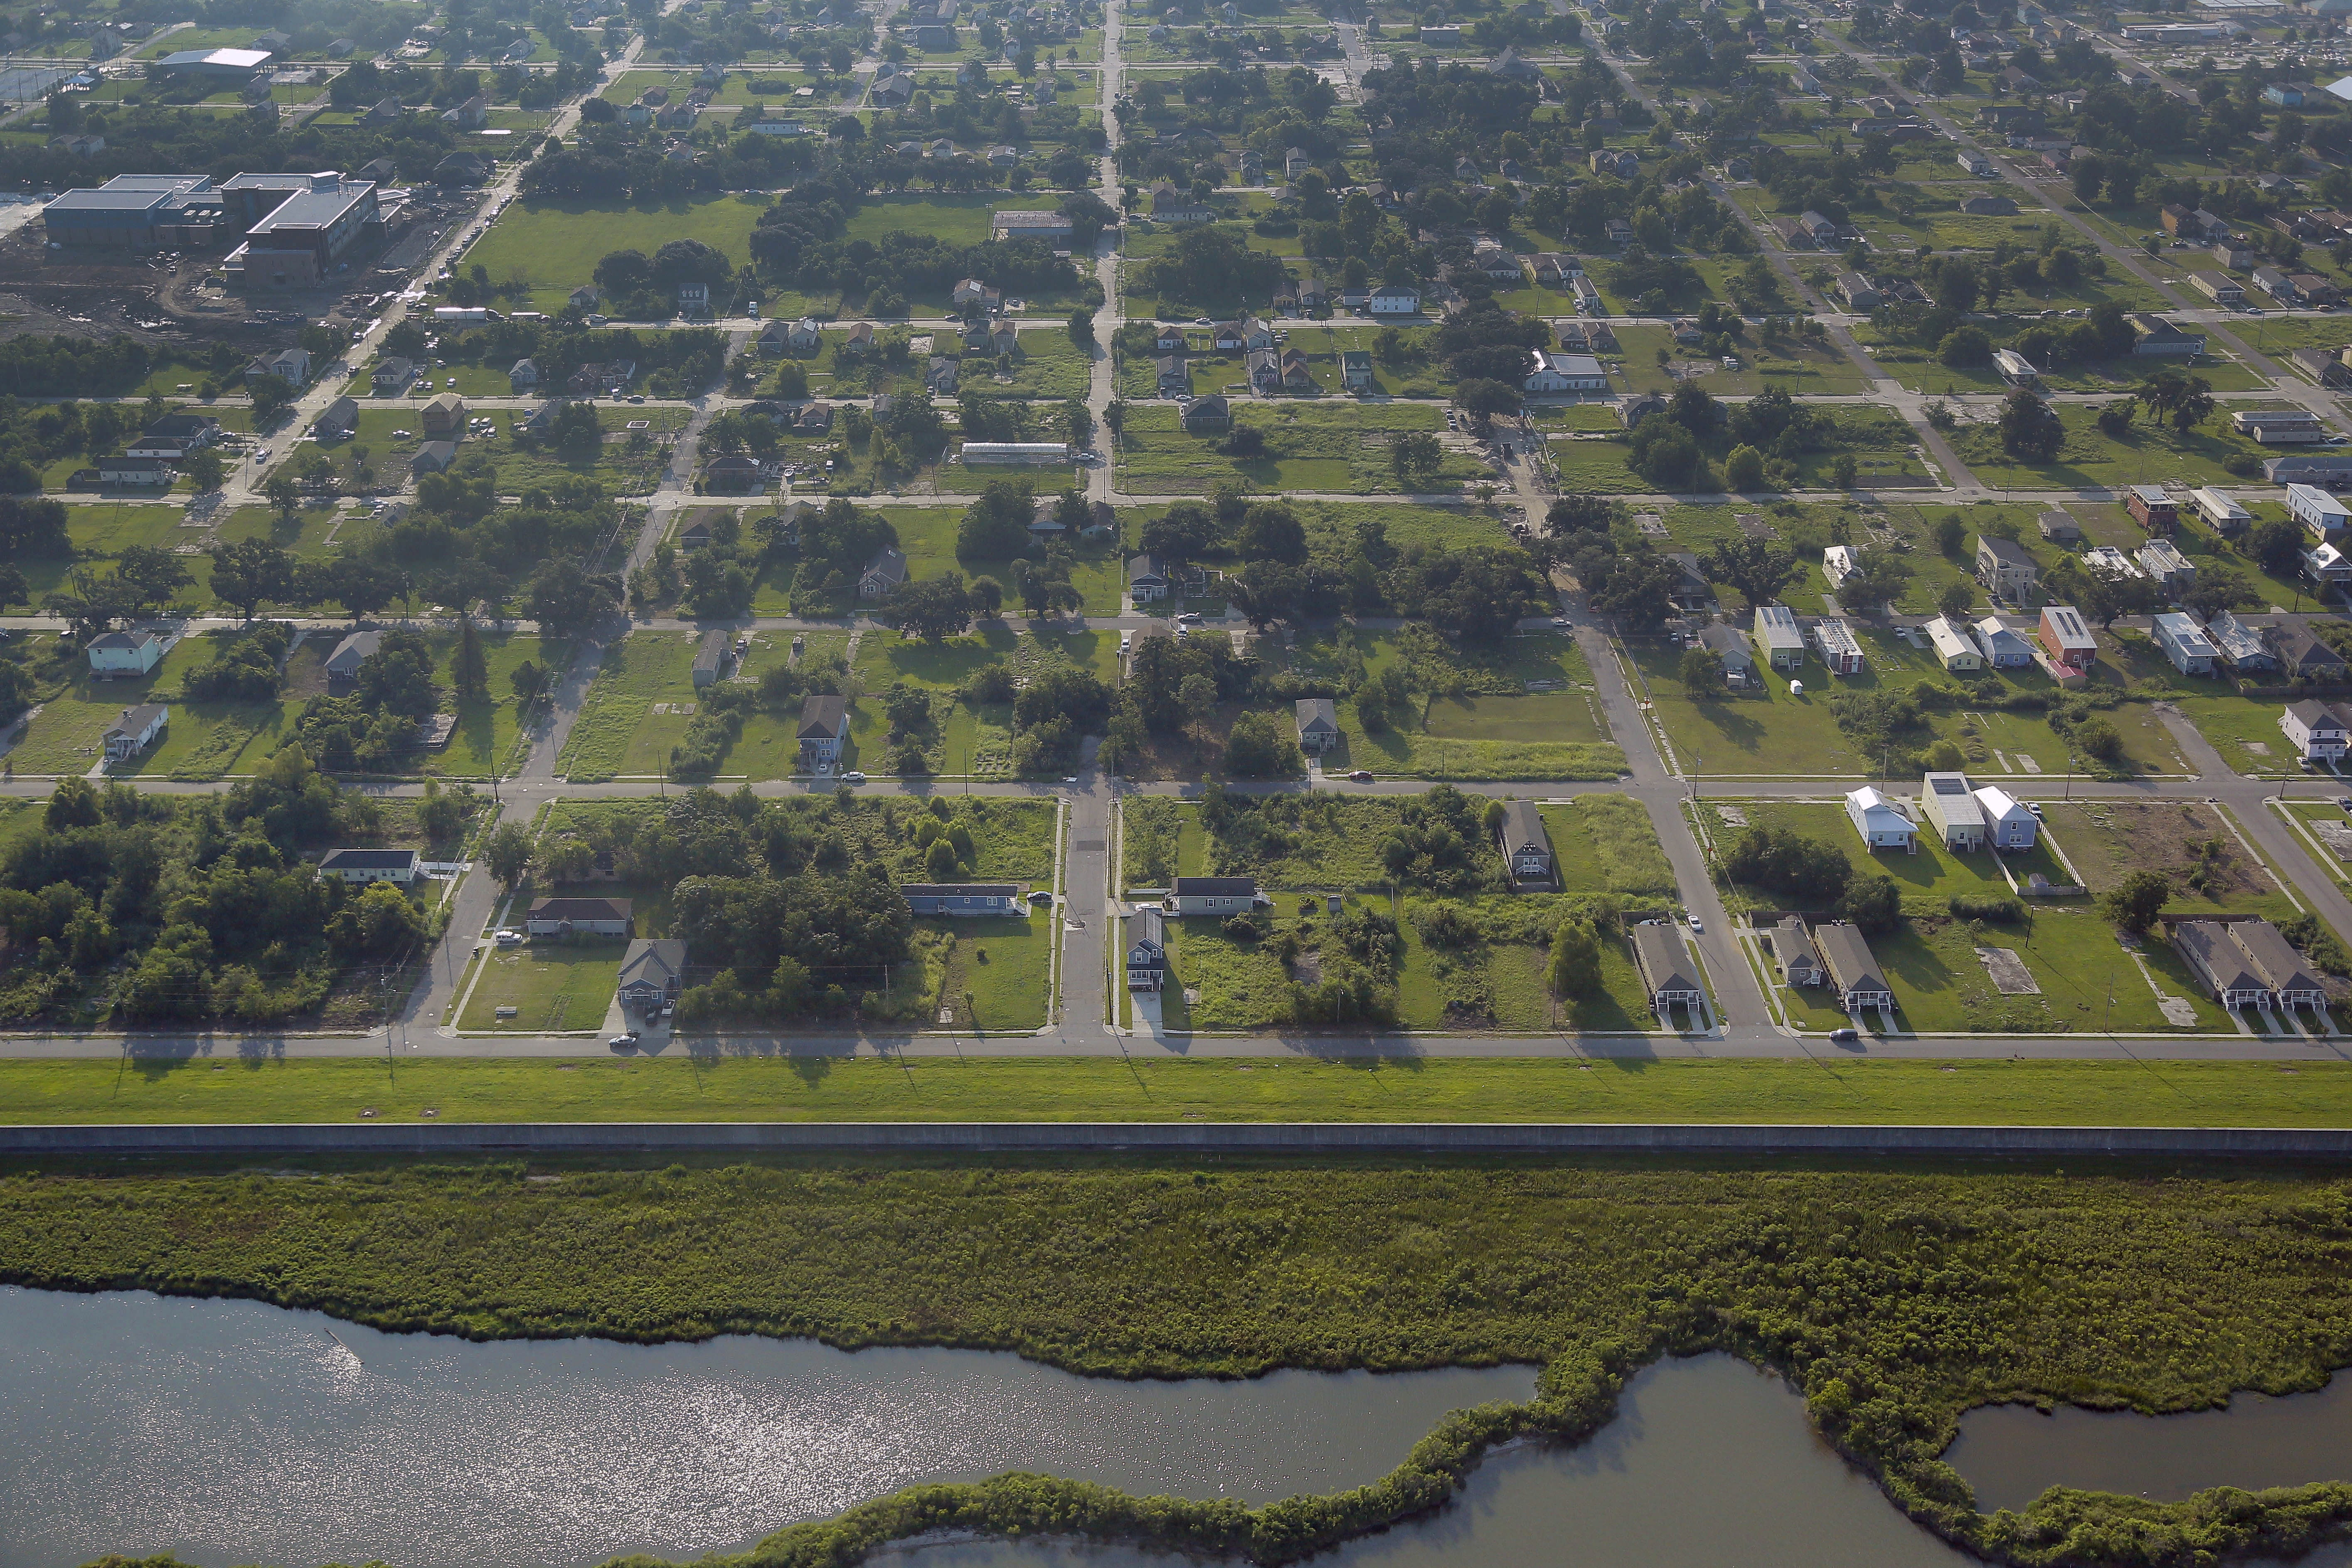 FILE - Empty lots are seen scattered throughout the Lower Ninth Ward neighborhood of New Orleans, Louisiana, Aug. 25, 2015.